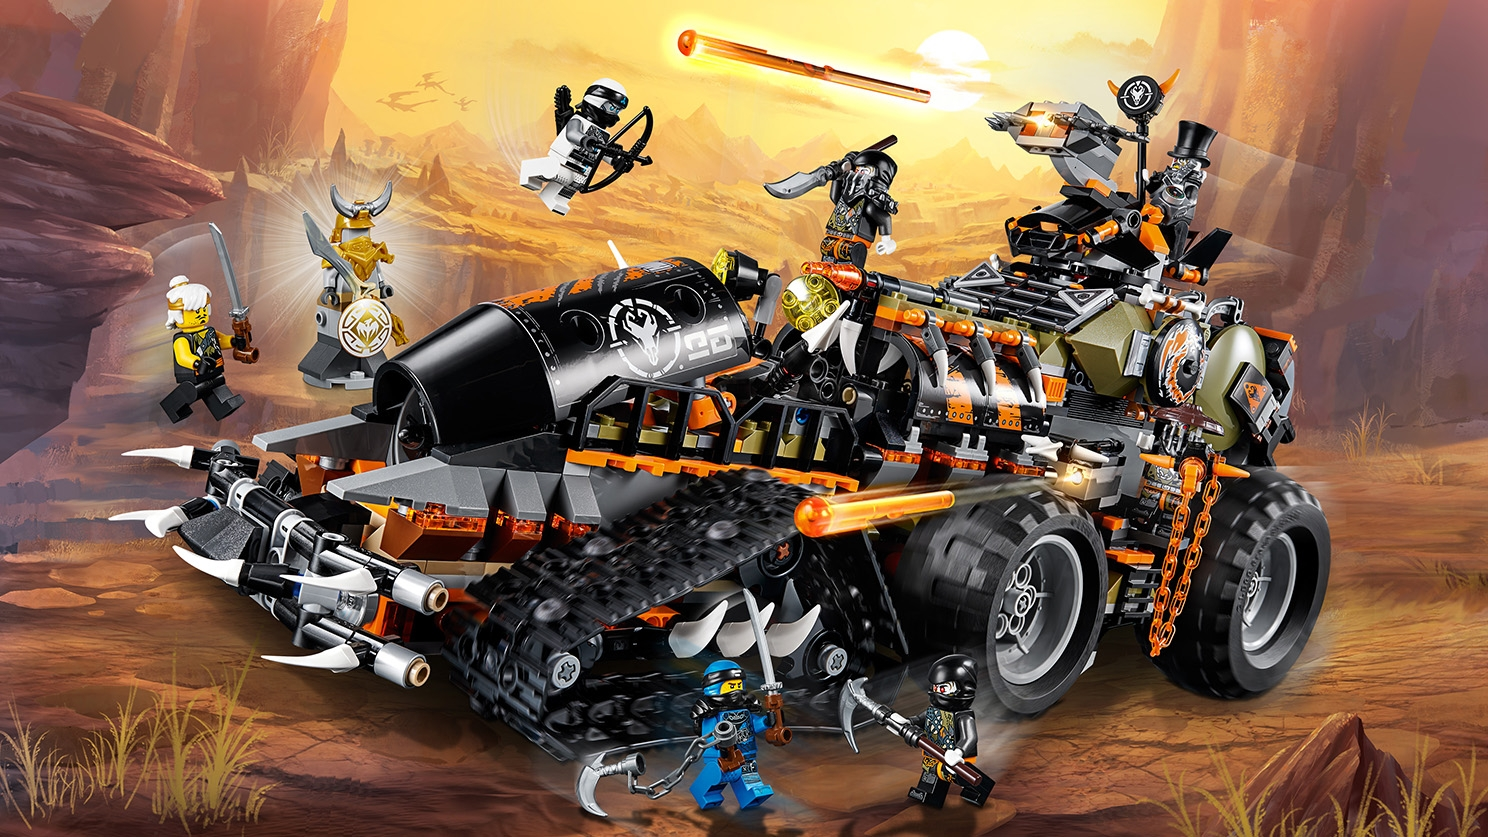 LEGO Ninjago - 70654 Dieselnaut - The evil dragon hunters attack the ninjas in their Dieselnaut tank in an attempt to claim the full Dragon Armour.